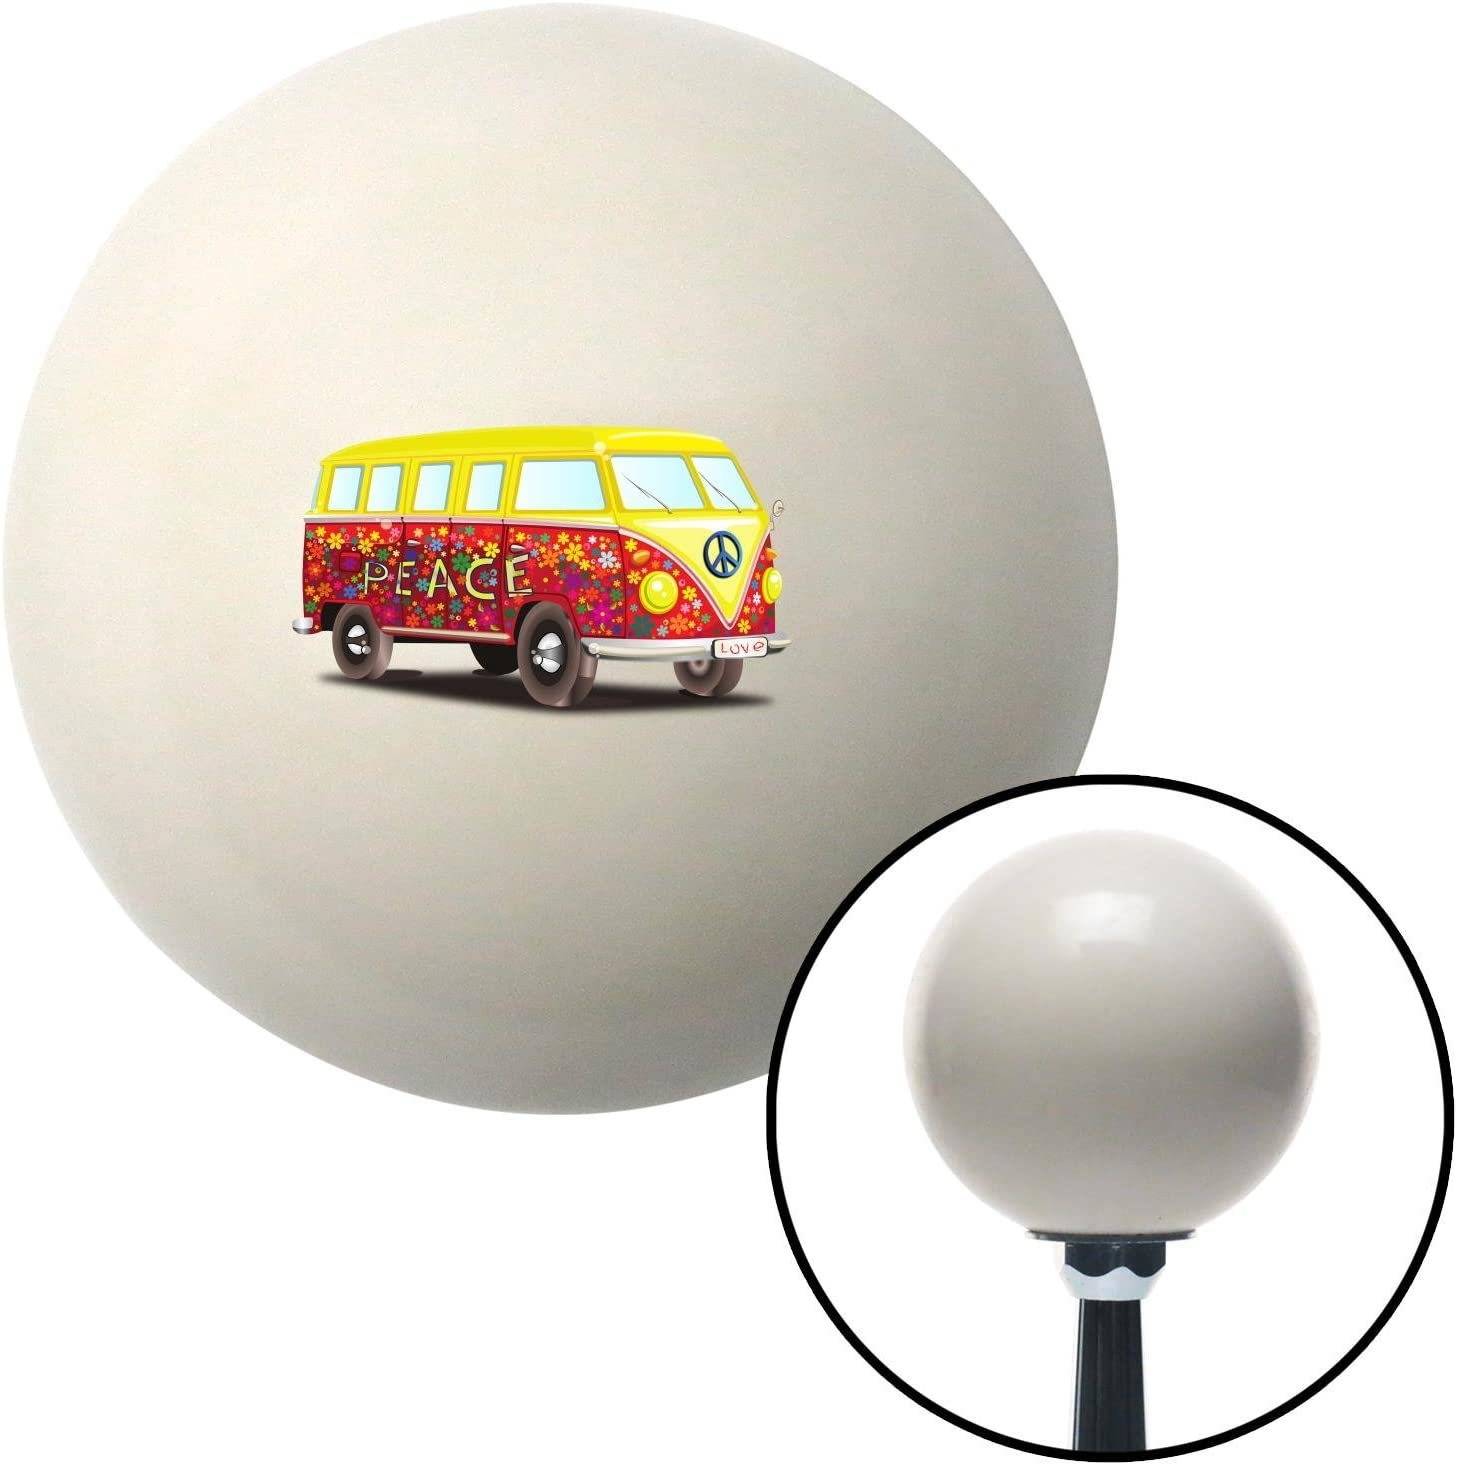 American Shifter 77355 Ivory Shift Knob with M16 x 1.5 Insert Hippie Bus